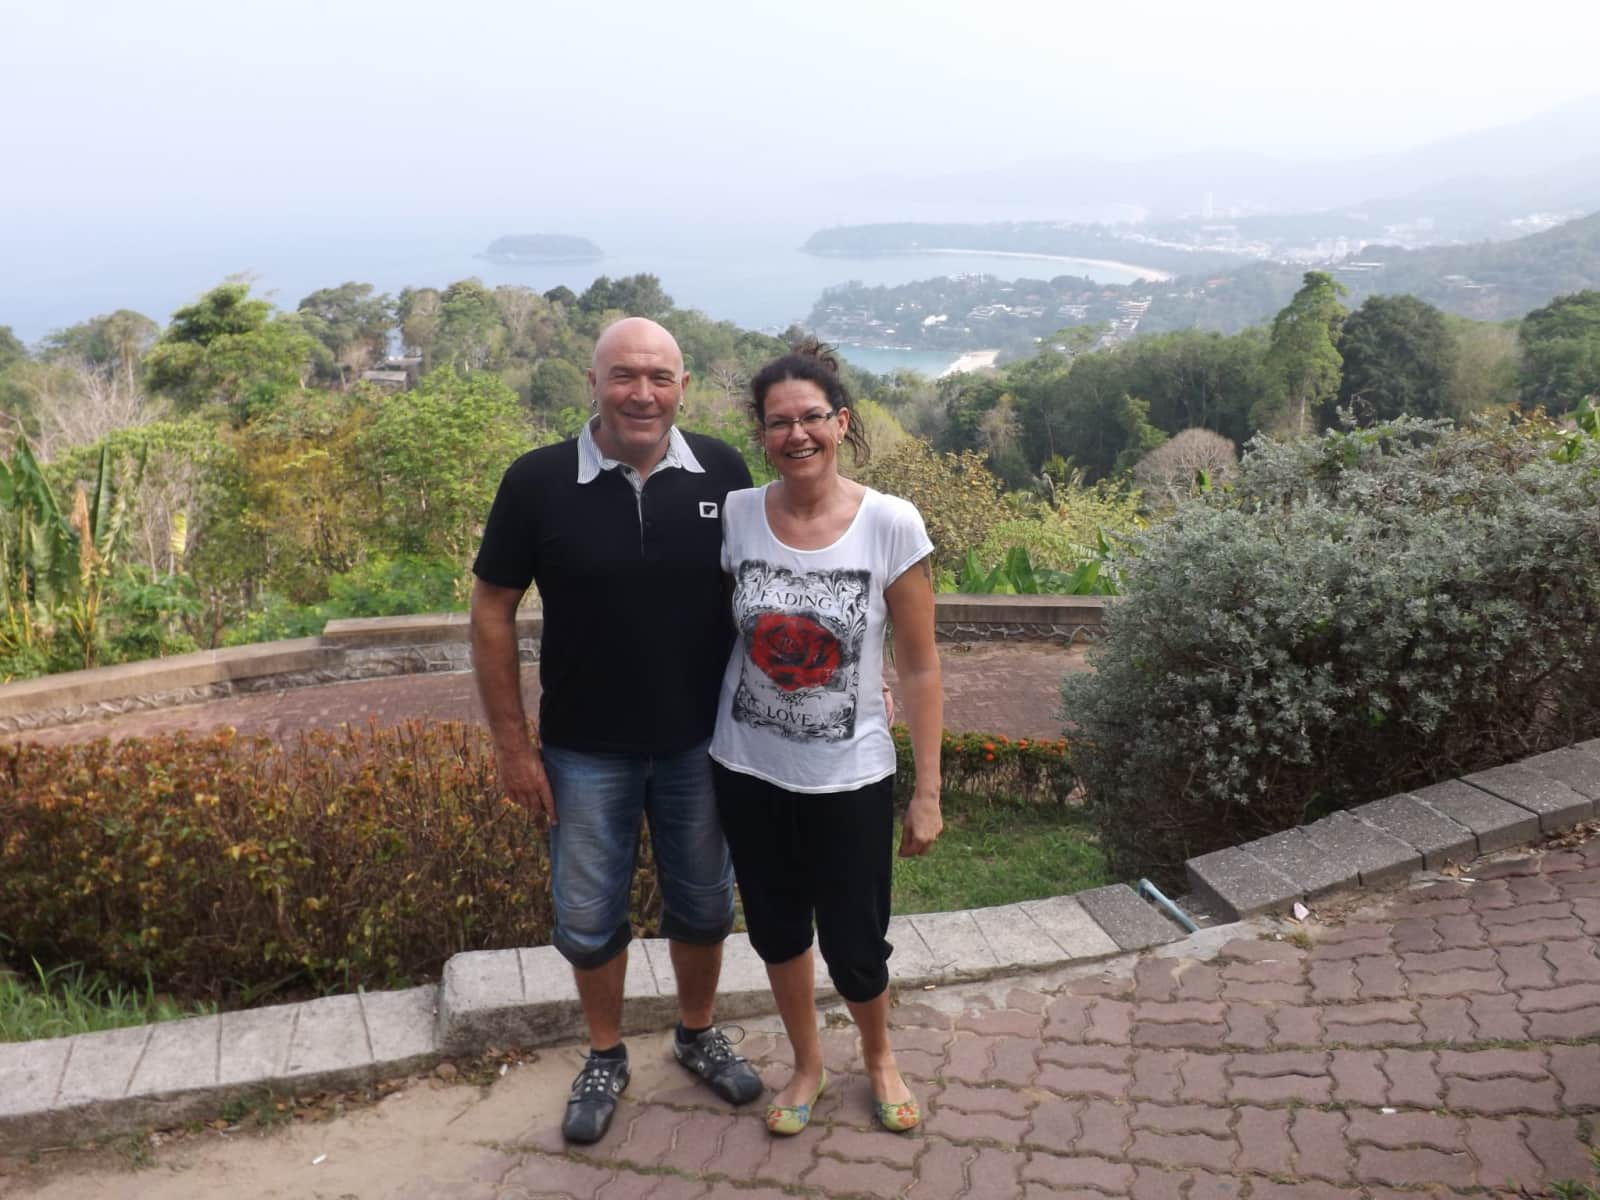 Beate & Uwe from Markdorf, Germany